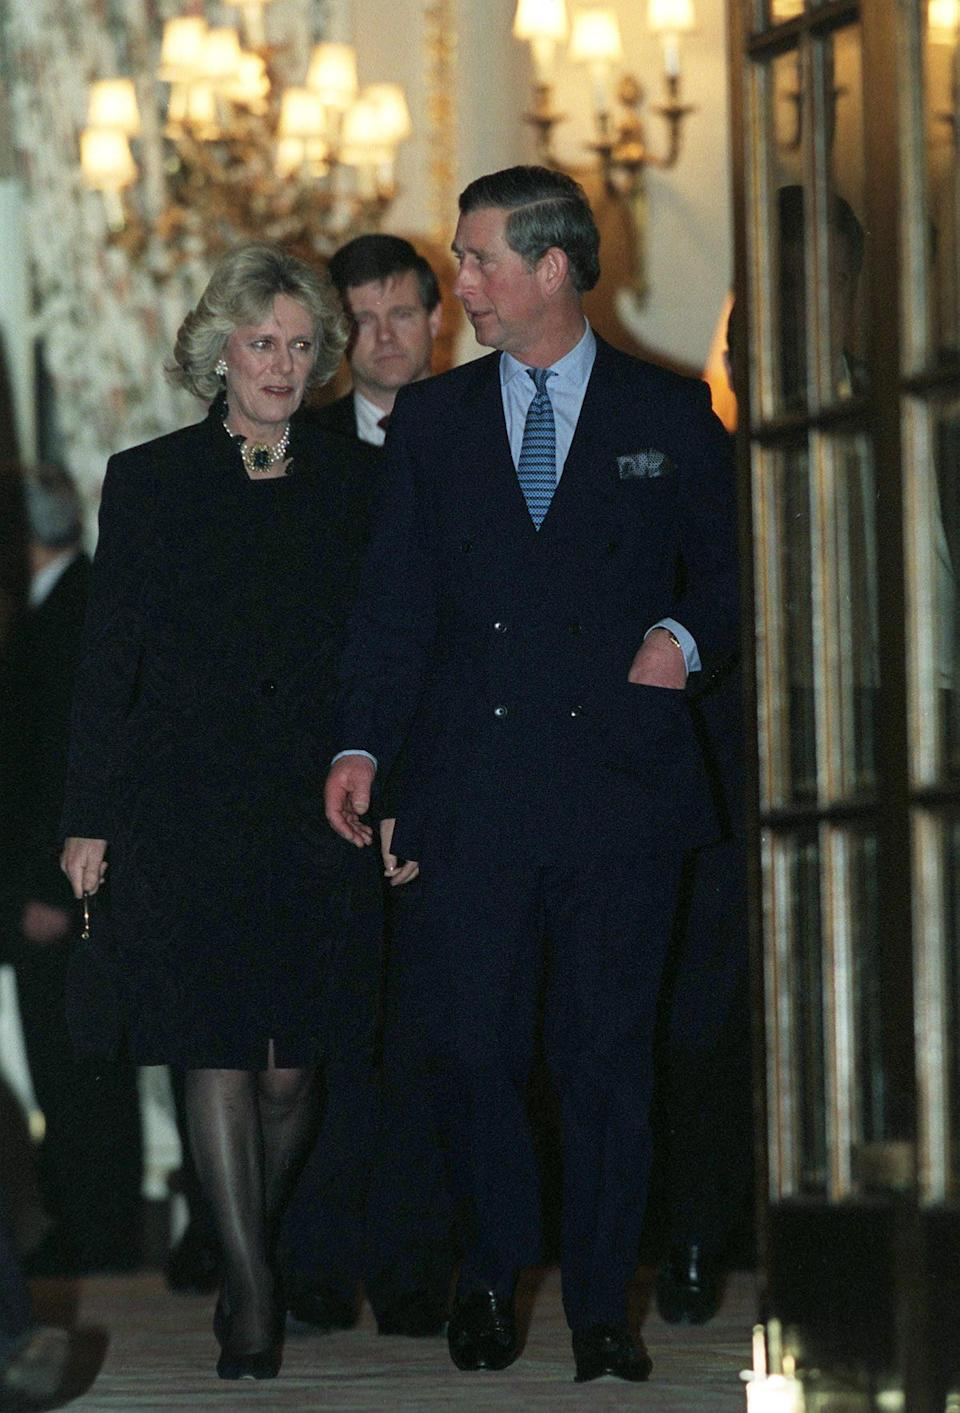 "<p>Soon after his divorce was finalized, Charles began slowly introducing Camilla into his life at large. Those plans were put on hold, however, after Diana's death in a car accident in 1997. By 1998, things were discreetly back on track, and a spokesperson for the prince confirmed a <strong>Guardian</strong> report that <a href=""http://www.theguardian.com/theguardian/1998/jul/10/fromthearchive"" class=""link rapid-noclick-resp"" rel=""nofollow noopener"" target=""_blank"" data-ylk=""slk:Camilla had been introduced to Prince William"">Camilla had been introduced to Prince William</a>.</p> <p>In January 1999, Charles and Camilla orchestrated their first public appearance together, leaving a 50th birthday party for Camilla's sister together. Later that year, the BBC reported, <a href=""http://news.bbc.co.uk/2/hi/uk_news/4410551.stm"" class=""link rapid-noclick-resp"" rel=""nofollow noopener"" target=""_blank"" data-ylk=""slk:Camilla joined Charles and his sons"">Camilla joined Charles and his sons</a> on a vacation in Greece.</p>"